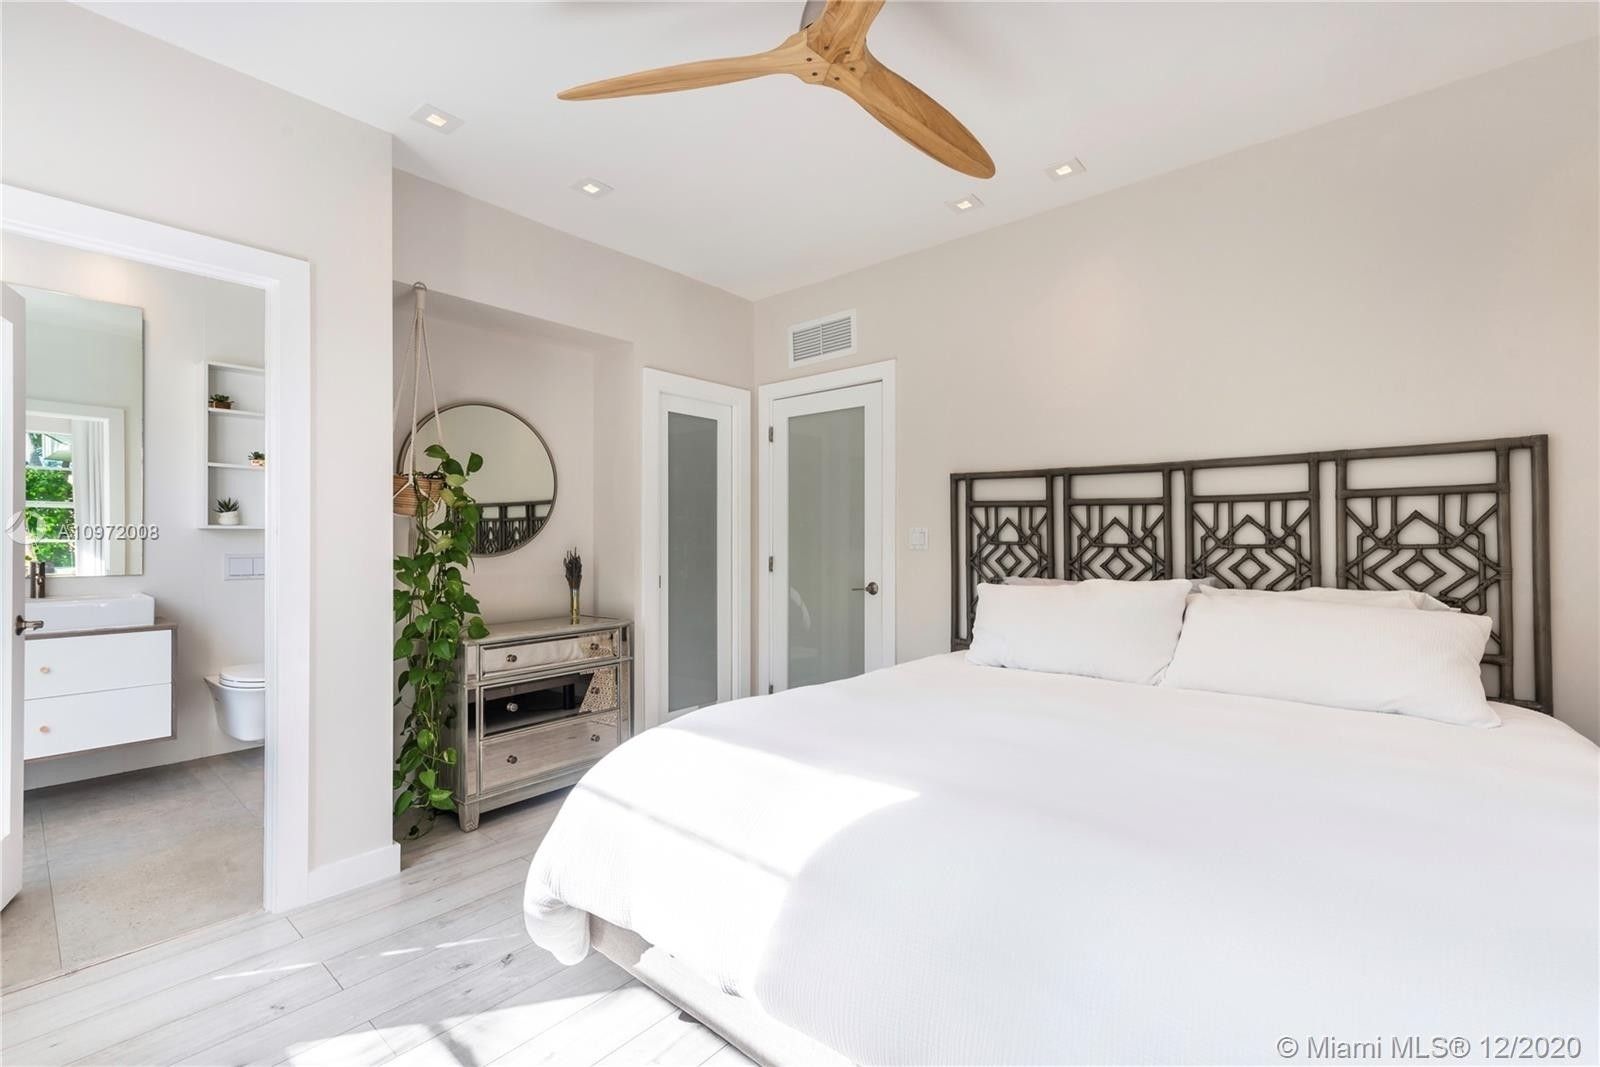 6. Condominiums for Sale at 1435 West Ave , 1 South Beach, Miami Beach, FL 33139